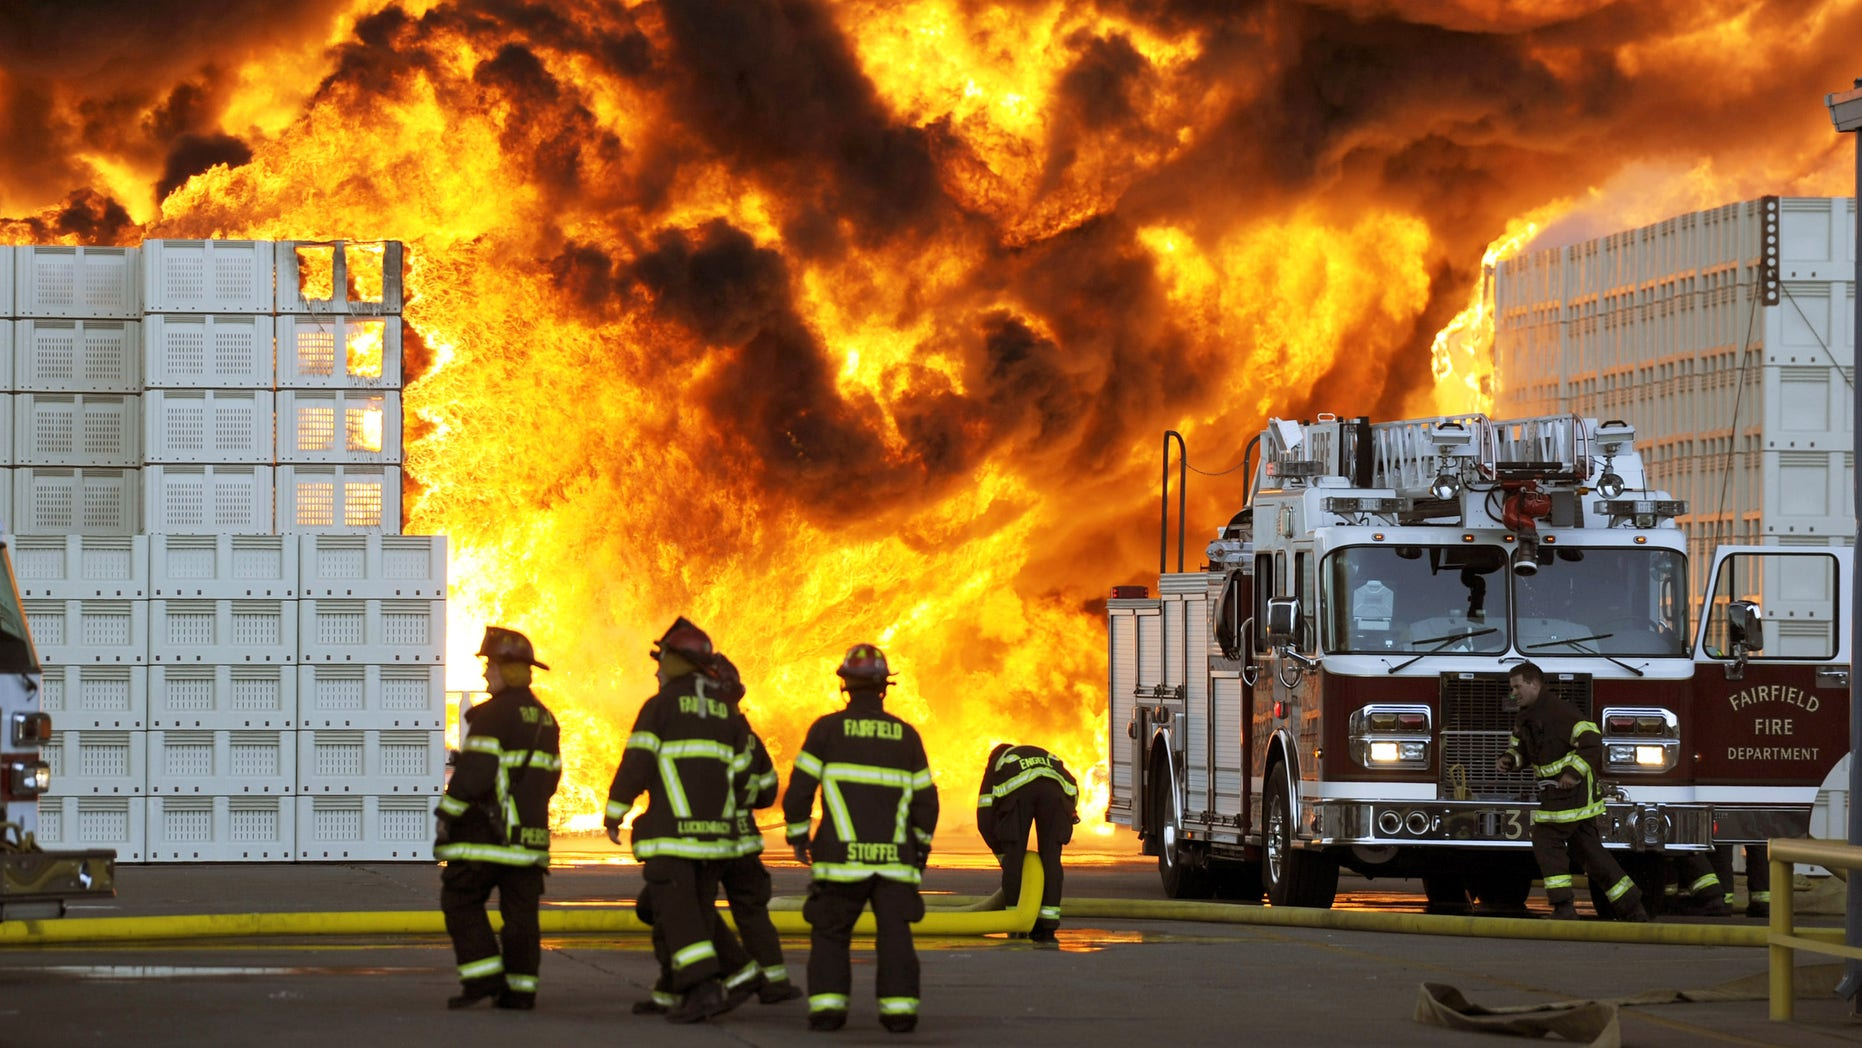 July 26: Firefighters prepare to reposition their ladder truck during their attack of a 6-alarm fire at the Macro Plastics manufacturing facility in Fairfield, California.  According to fire officials, the 1:15 p.m. blaze started in the storage yard housing hundreds of plastic containers used for shipping agricultural products.